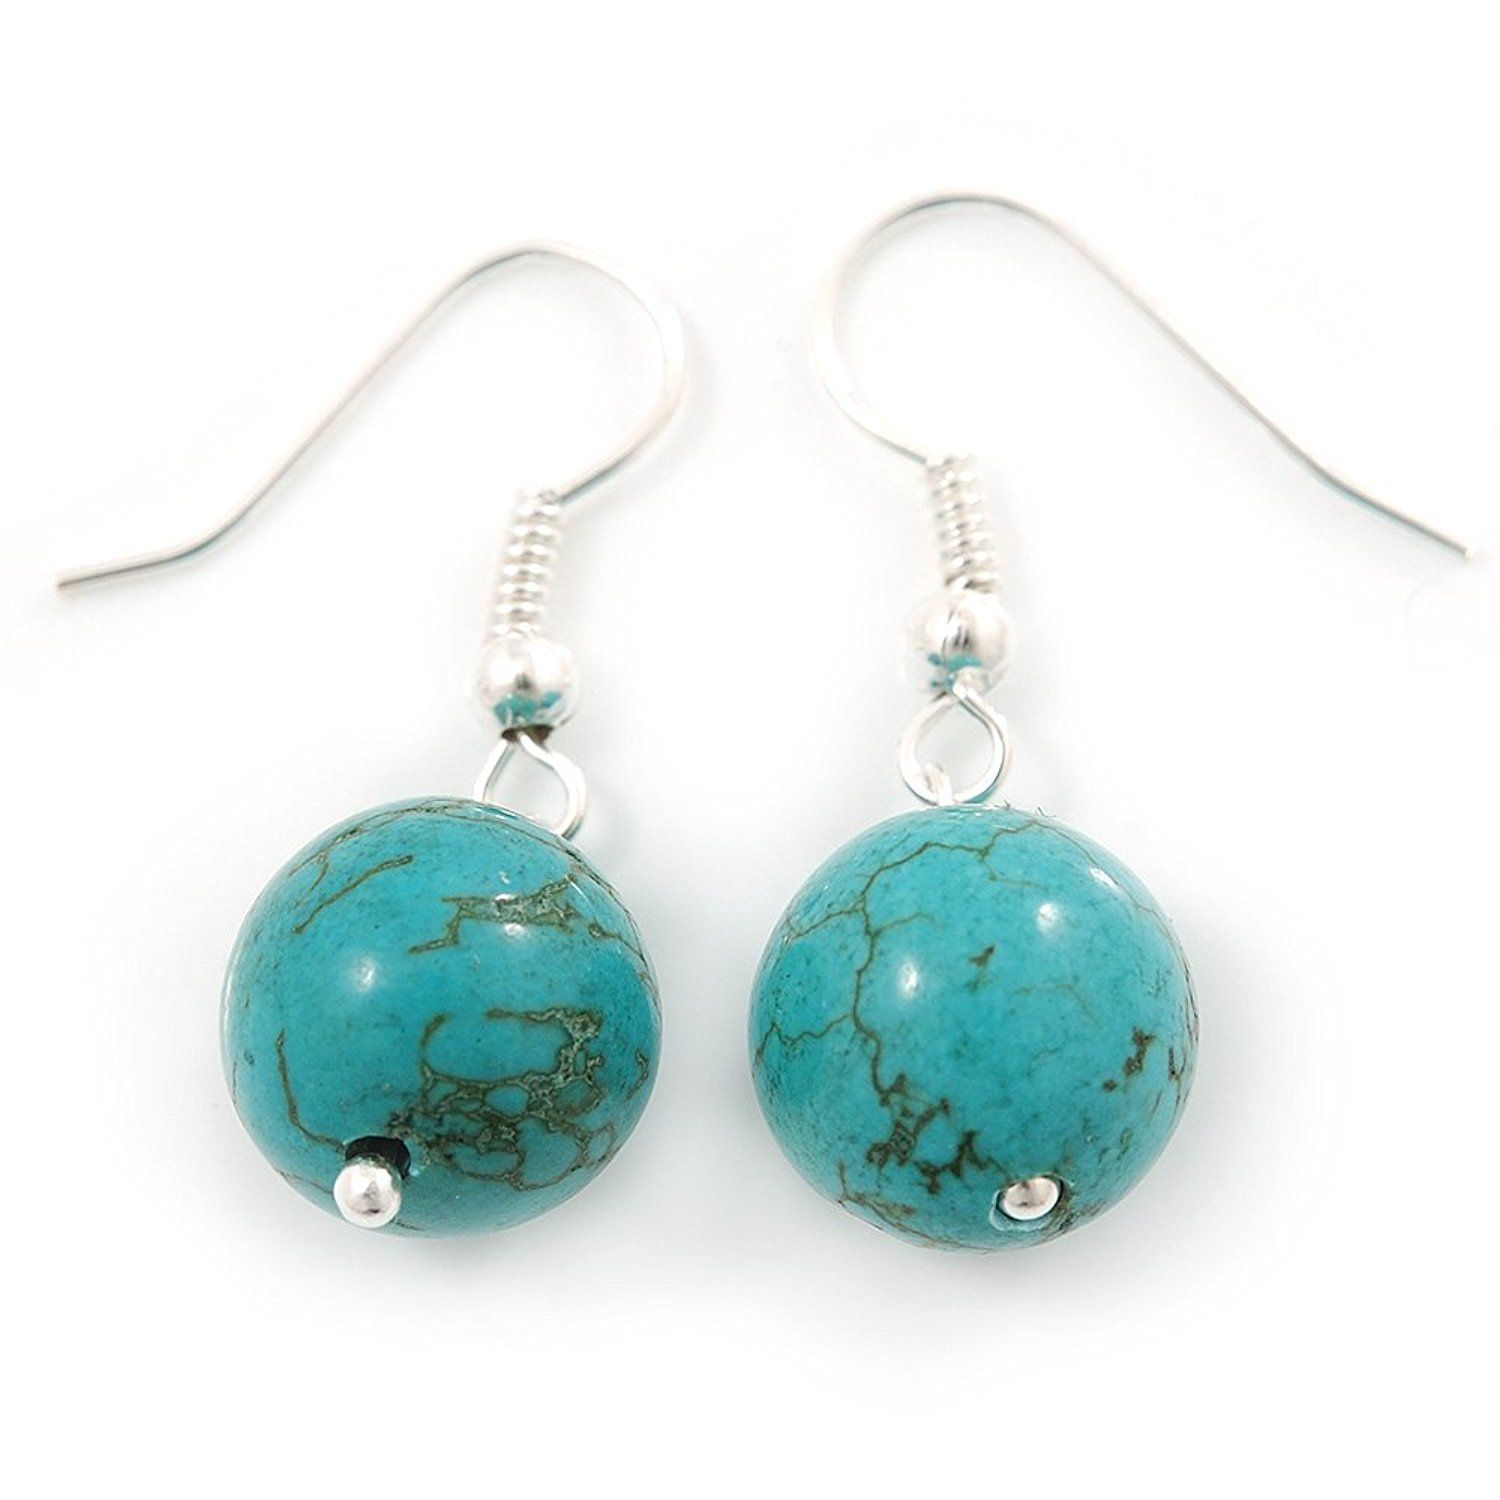 12mm Turquoise Bead Drop Earrings In Silver Tone - 30mm L y21PQ9